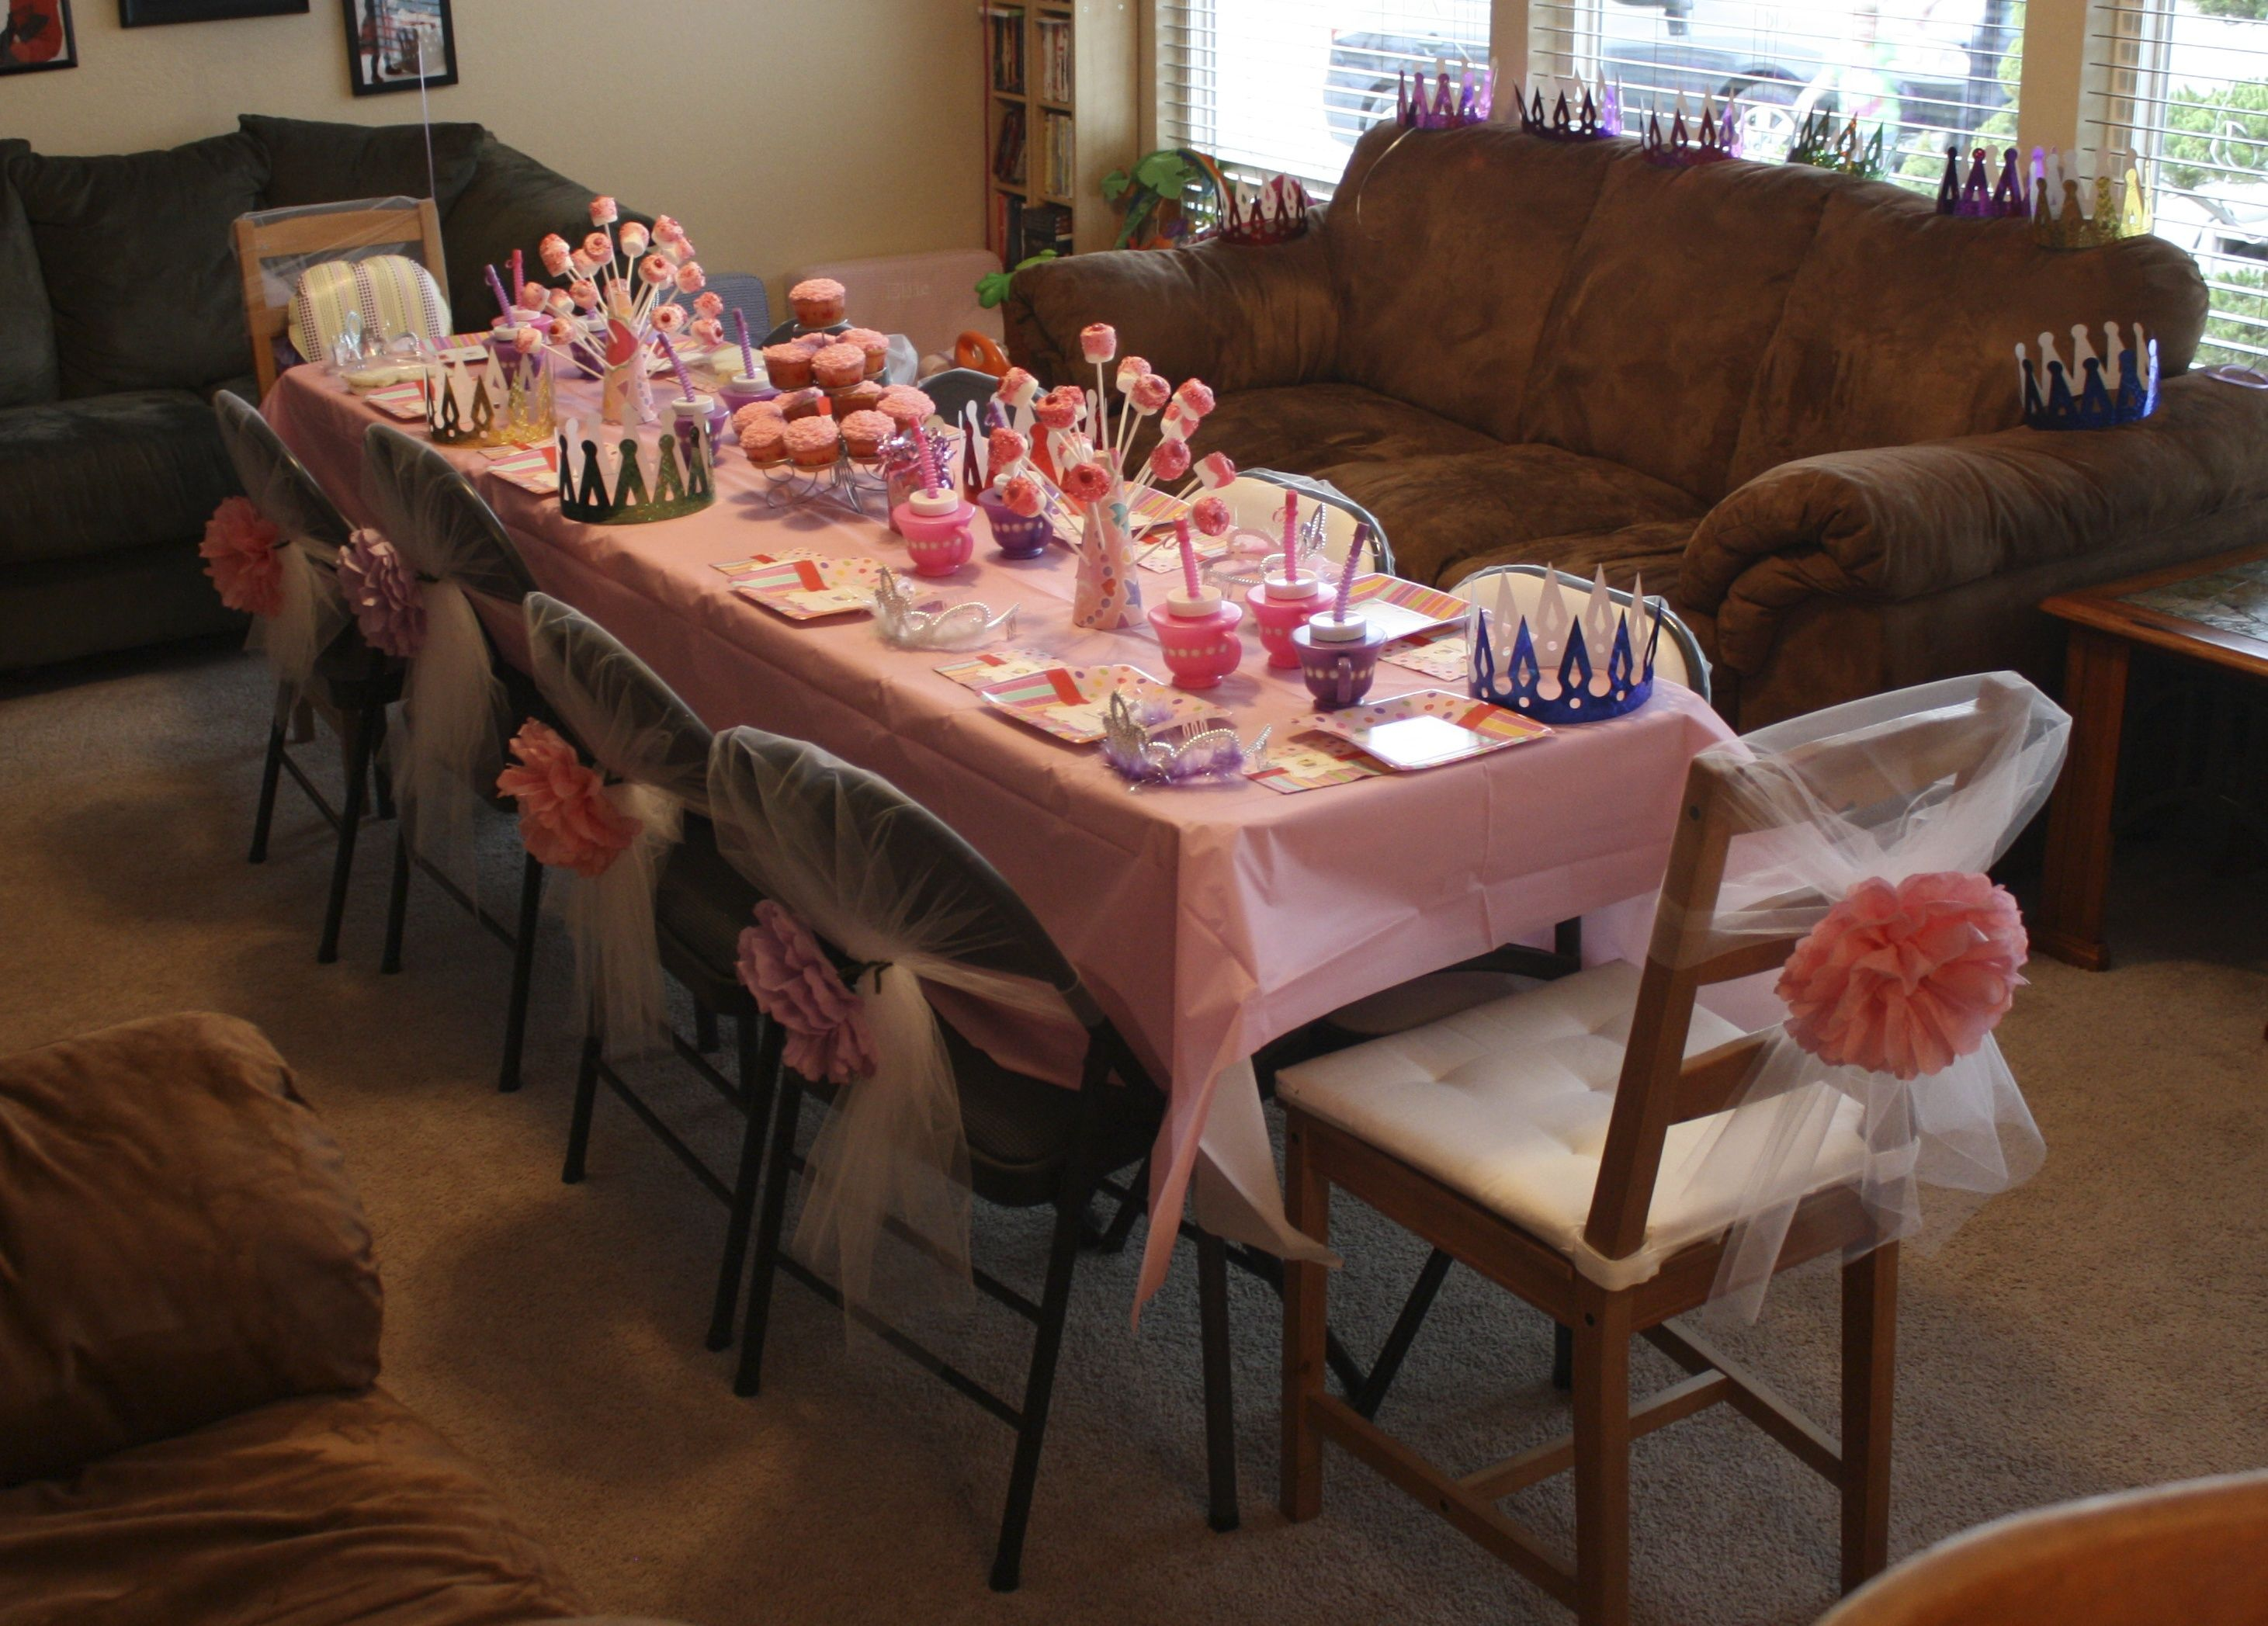 Princess Tea Party 2 year old birthday party for my little girl